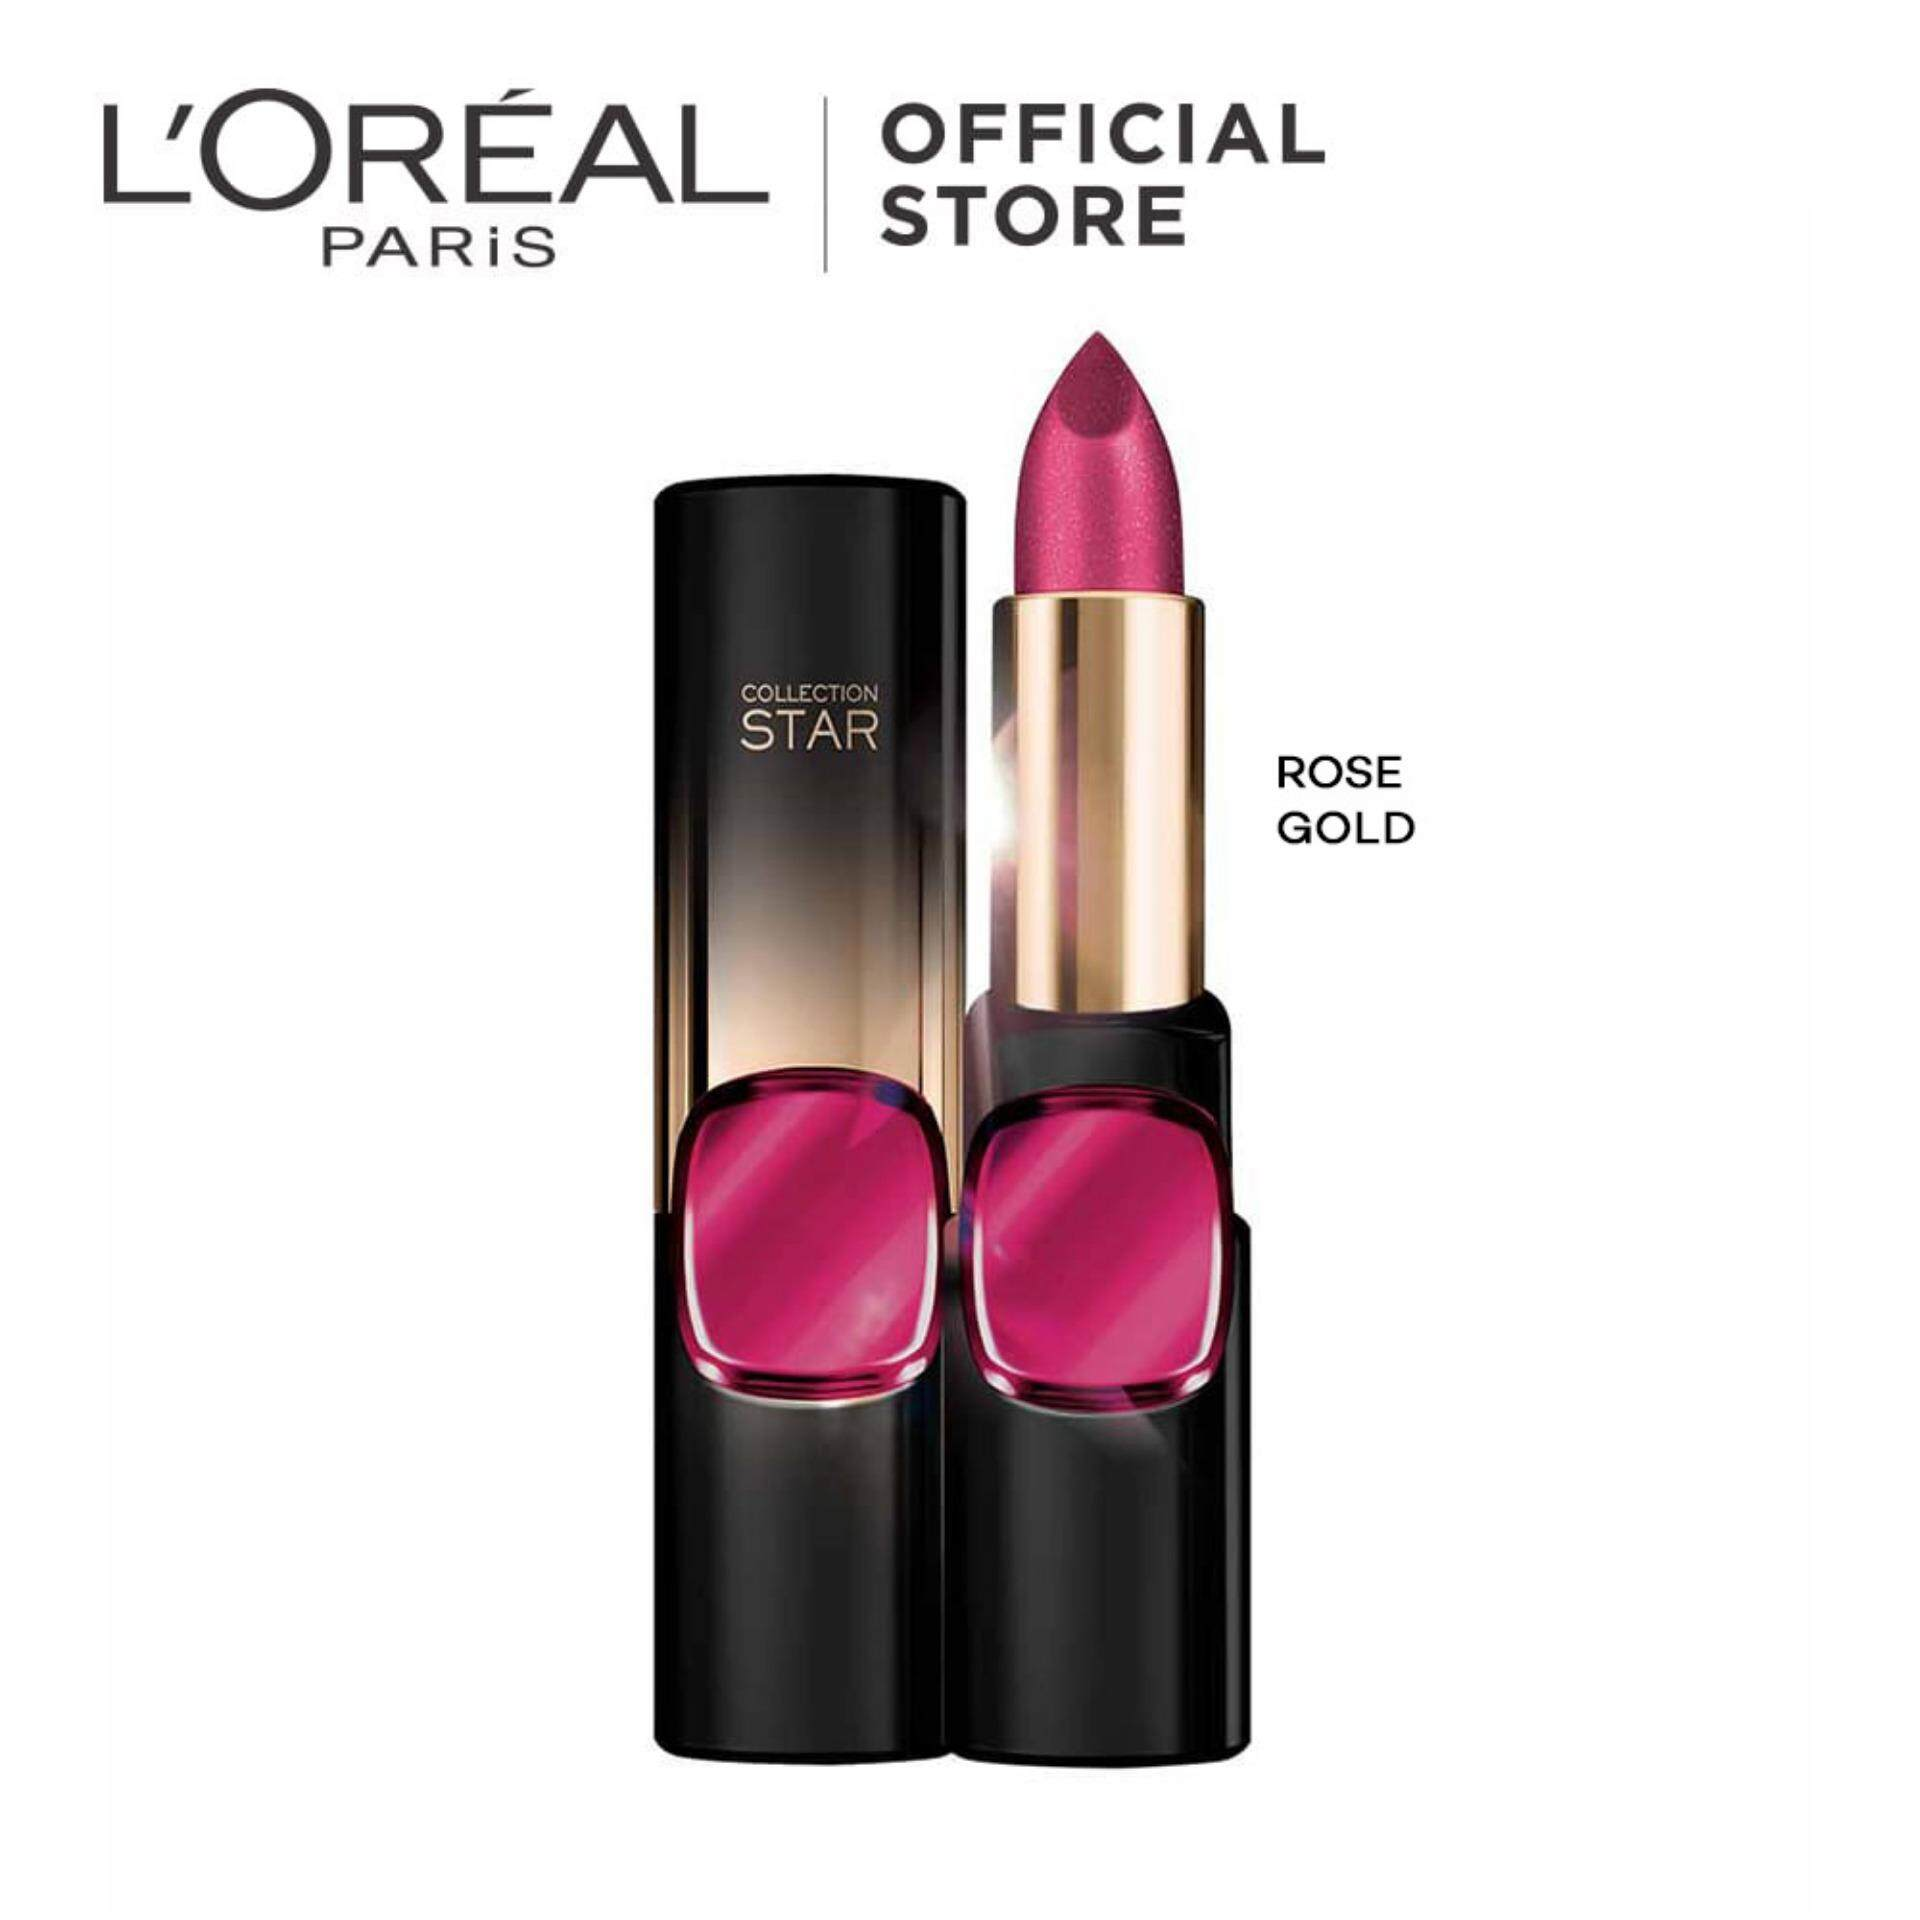 L'Oreal Paris Color Riche Star 24K Gold Lipstick